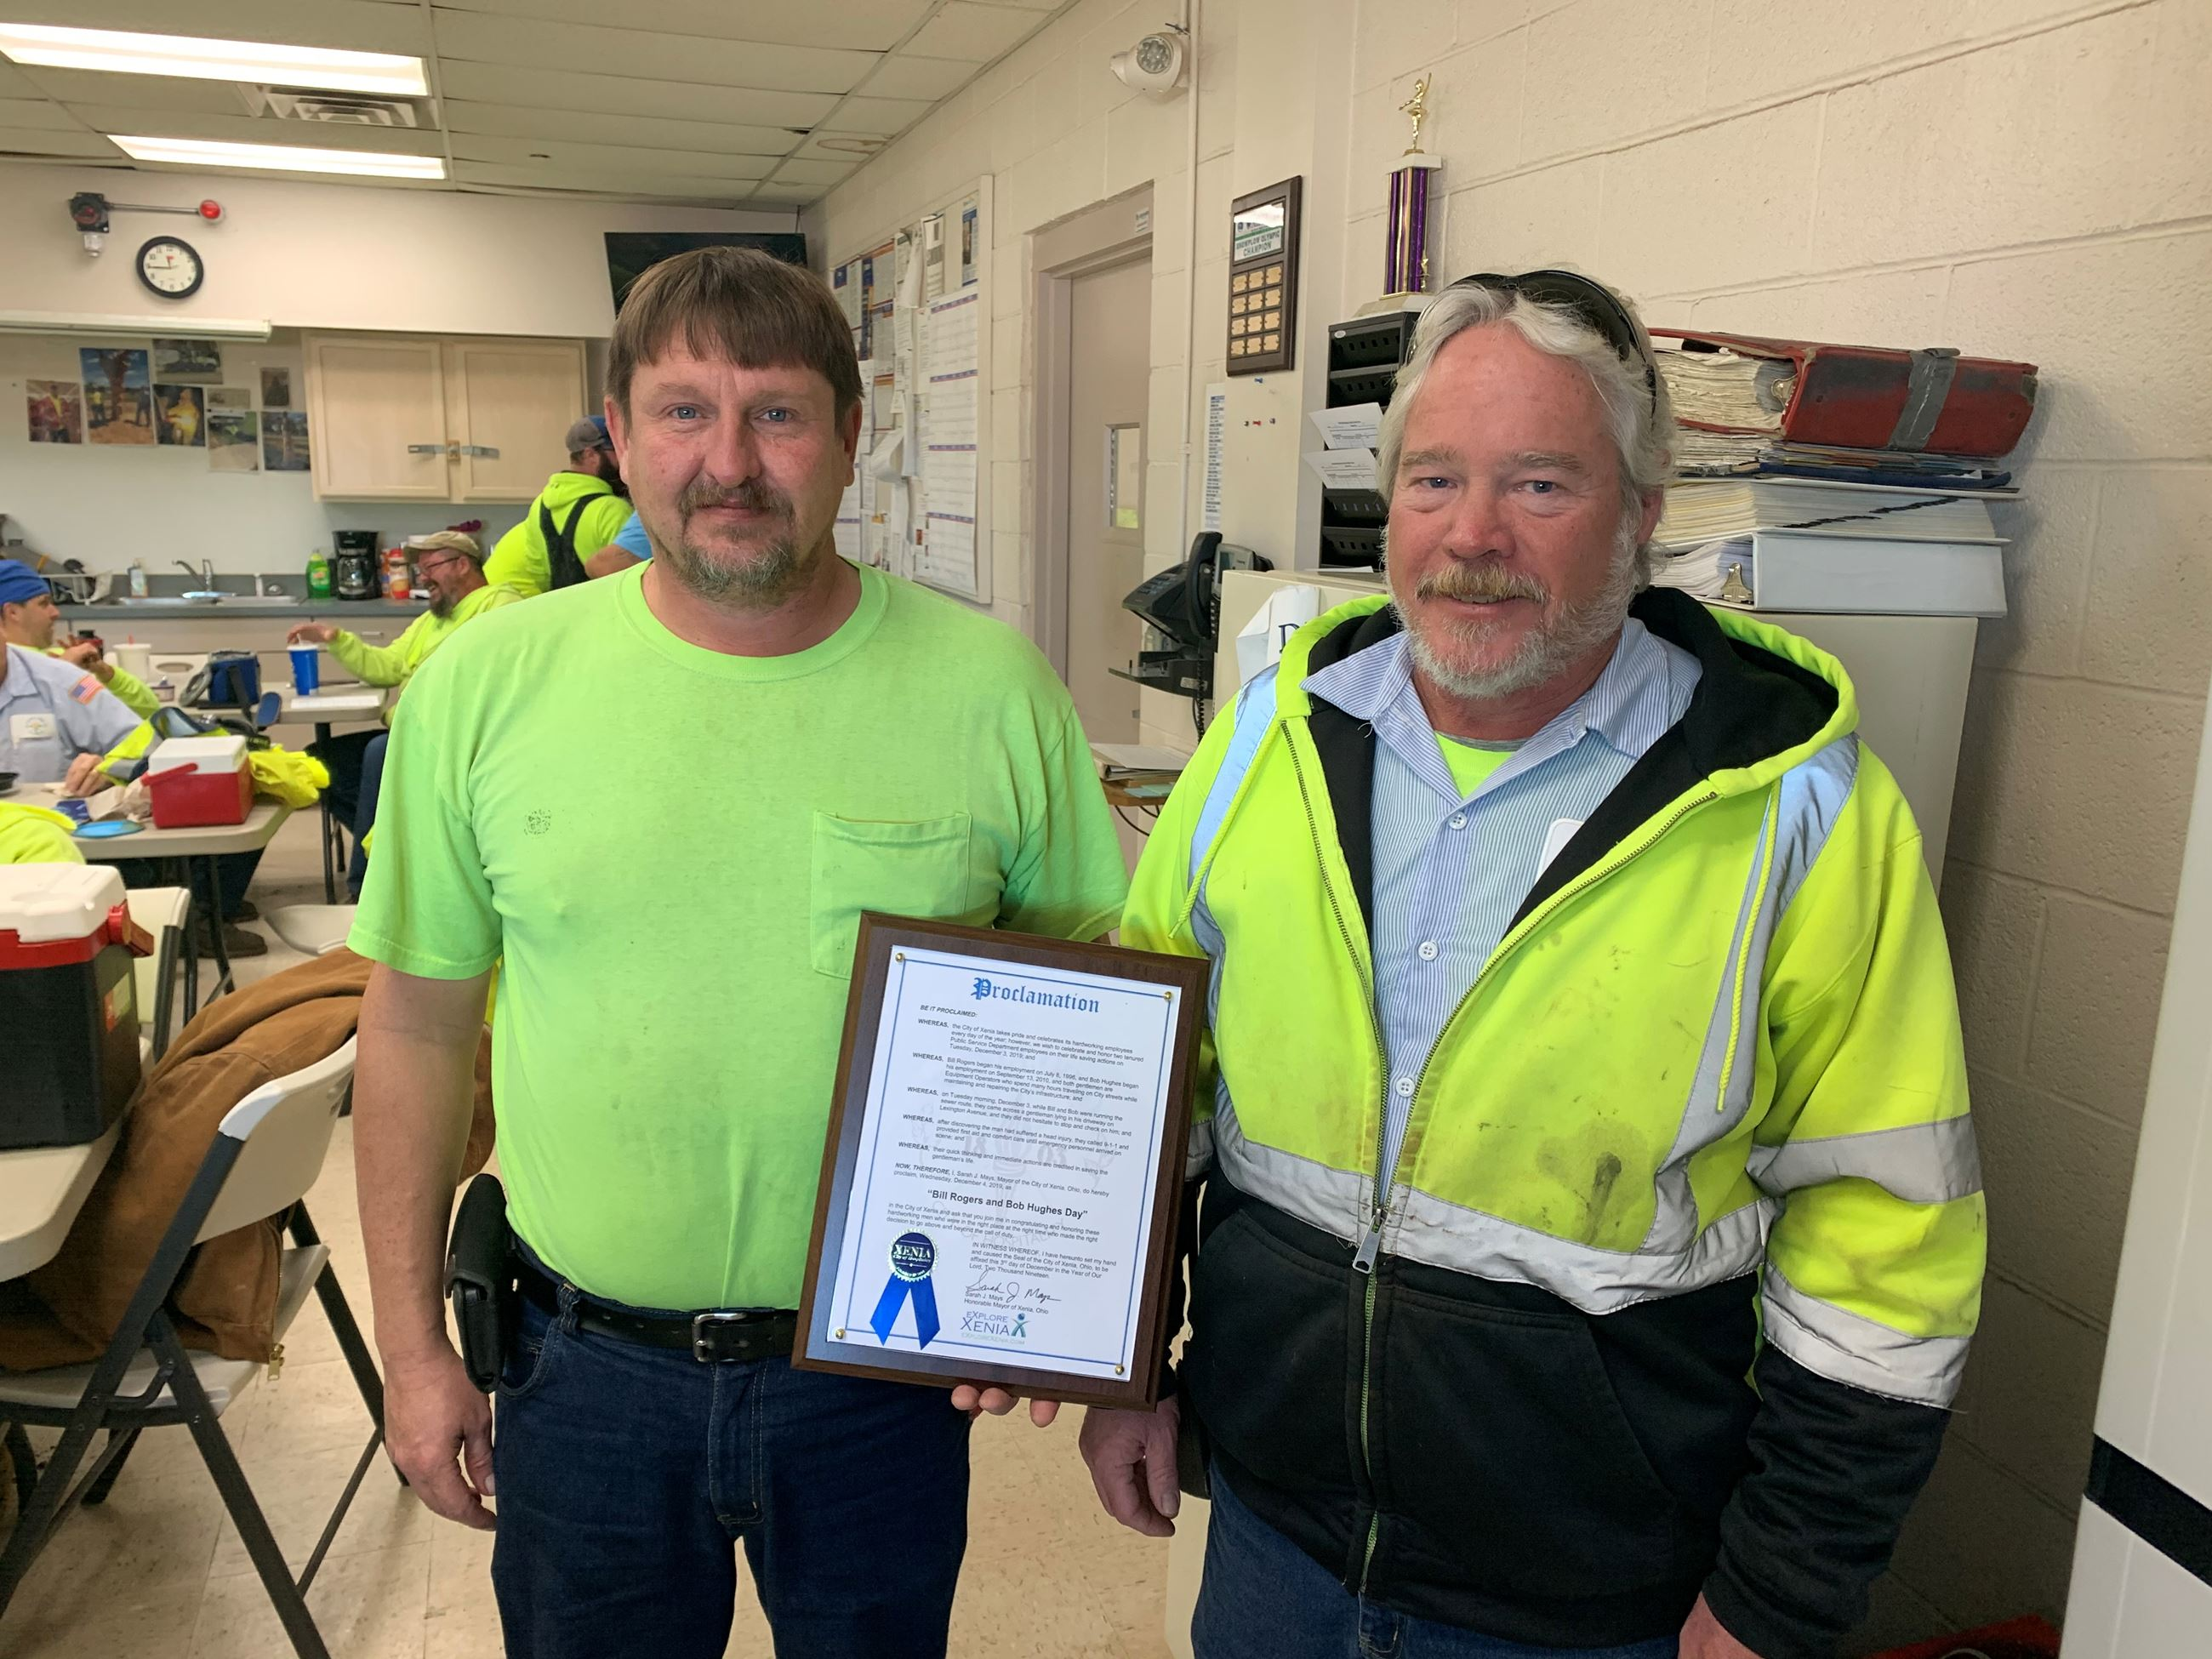 Public Service Workers Honored